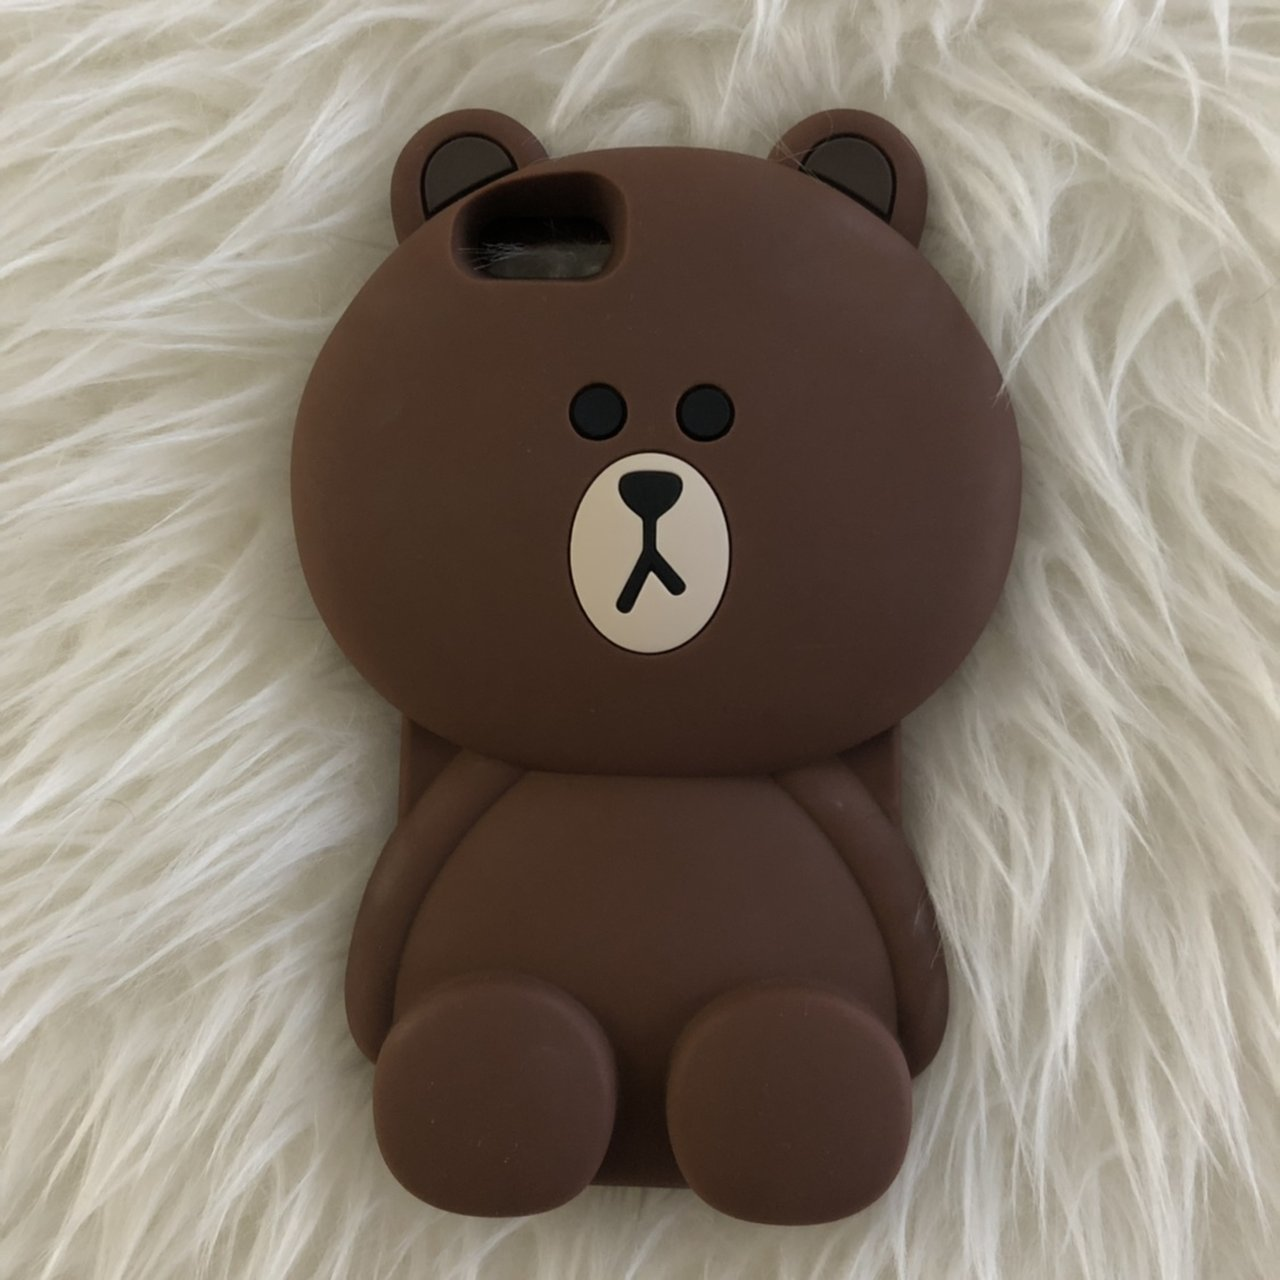 sports shoes 7de9b 2bb56 line brown bear phone case for the iphone 6s+ 🐻 ... - Depop